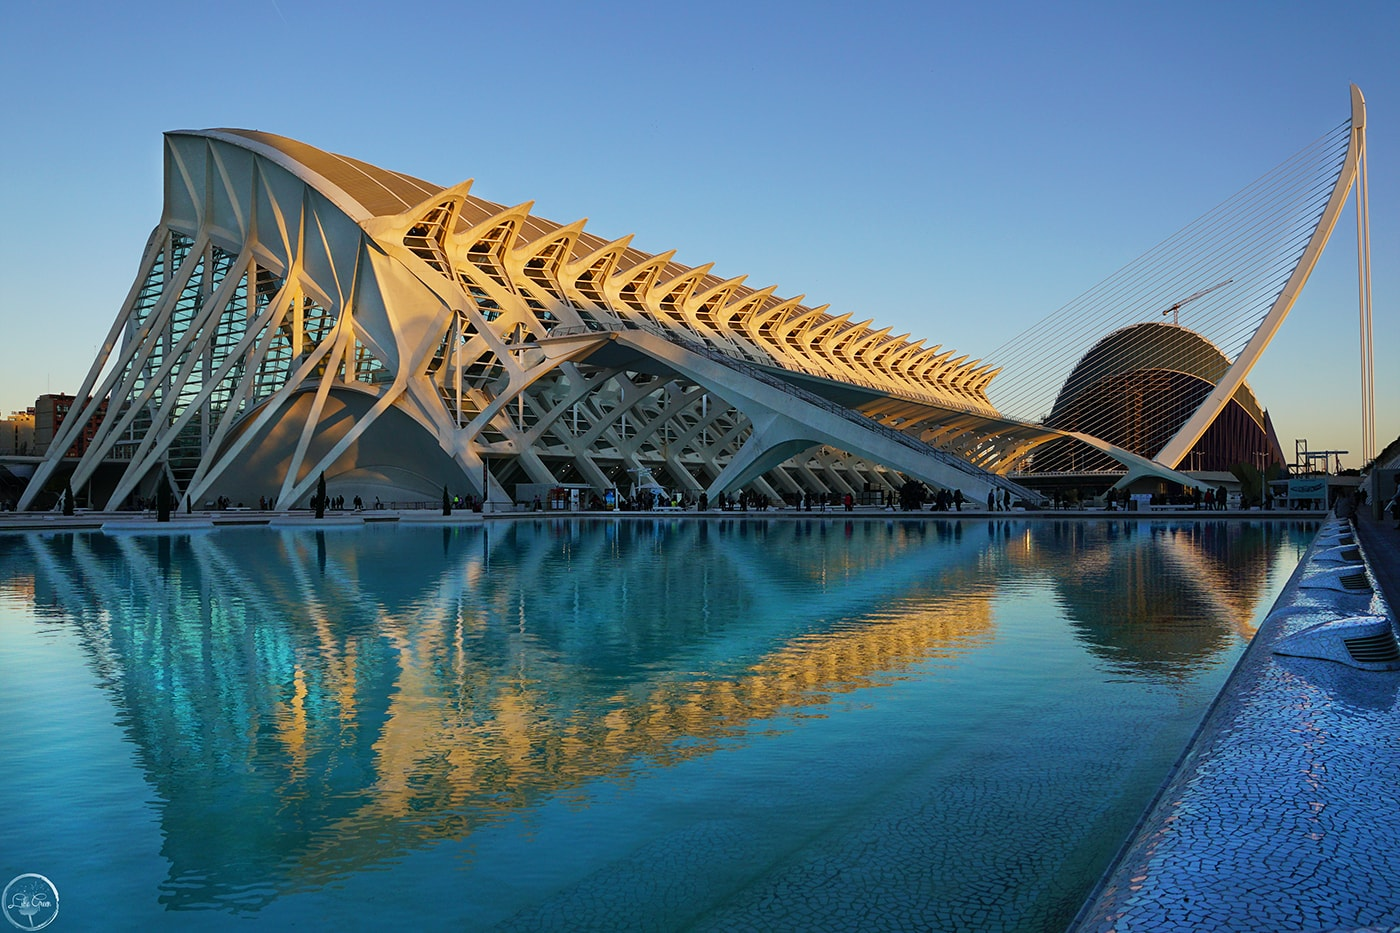 Museo De Las Ciencias Príncipe Felipe and Agora, City of Arts and Sciences